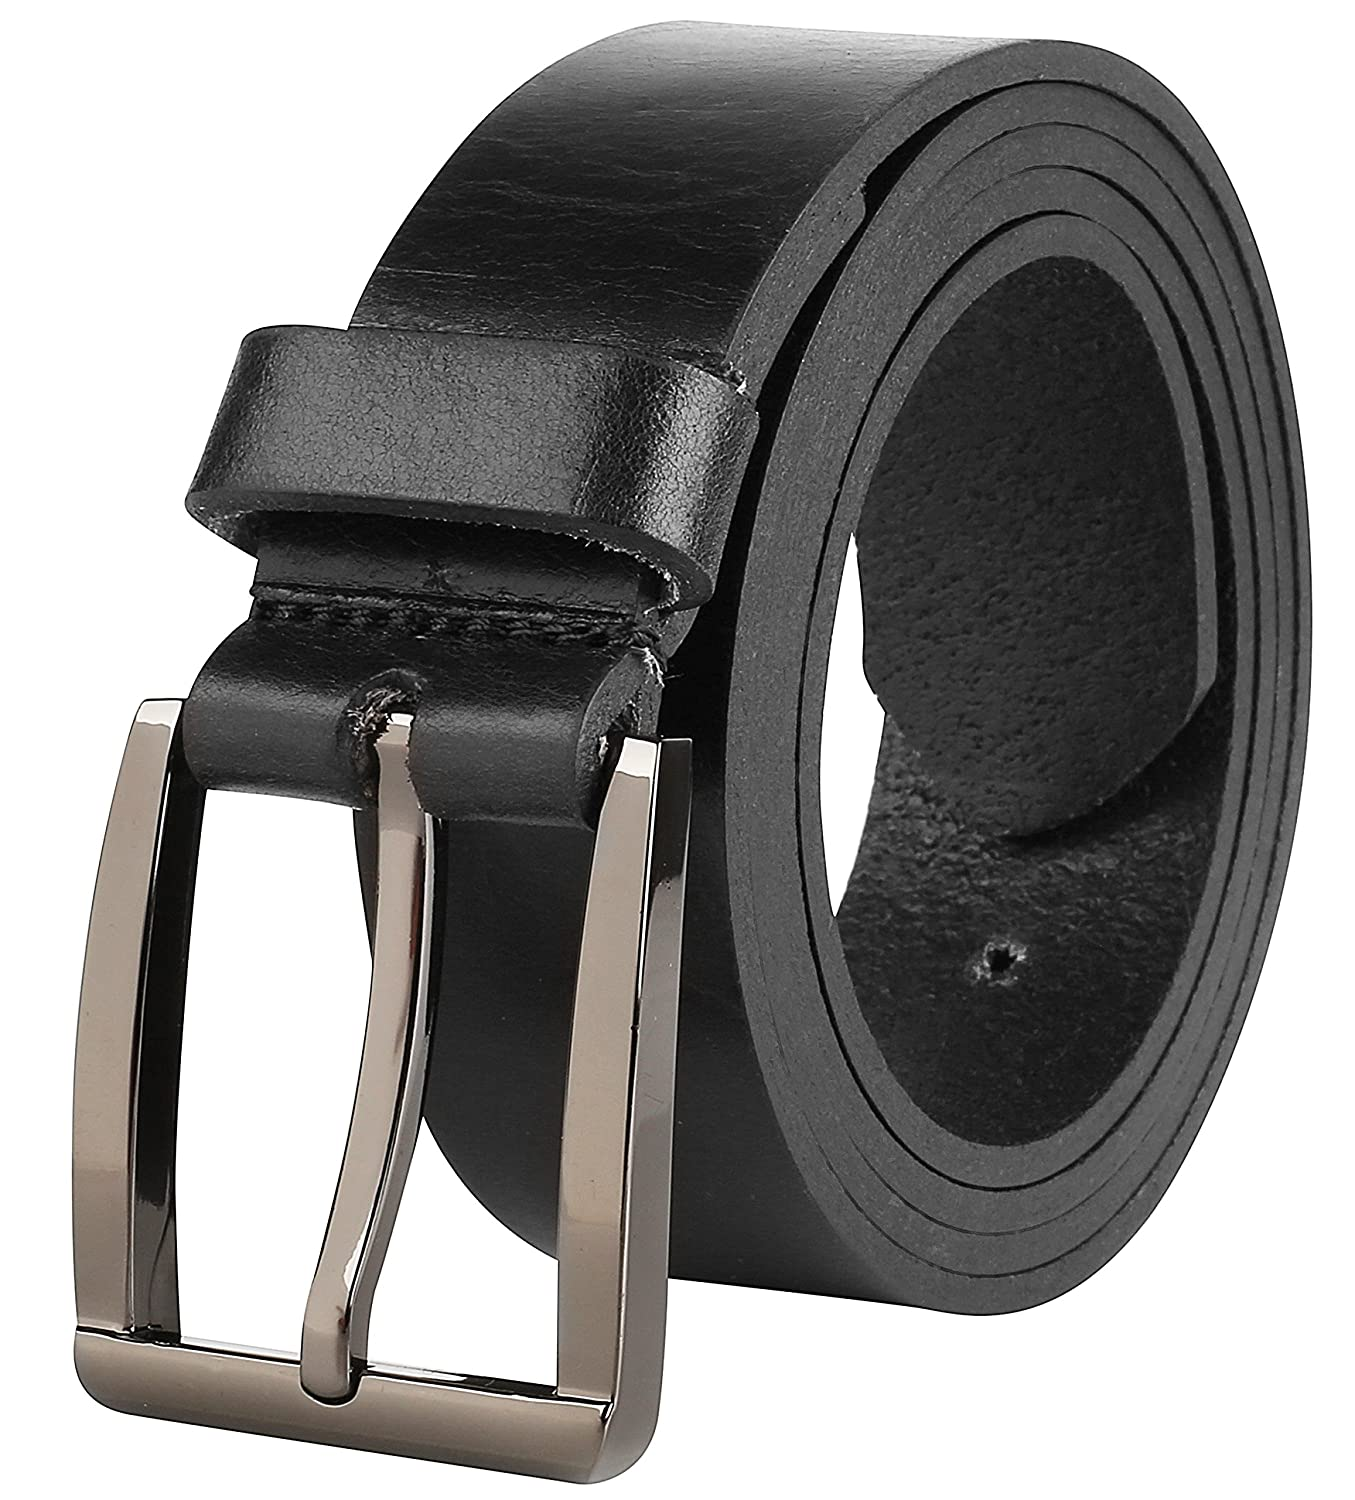 USA Mens Casual Full Grain Classic Leather Dress Belt For Jeans,1.25 Wide